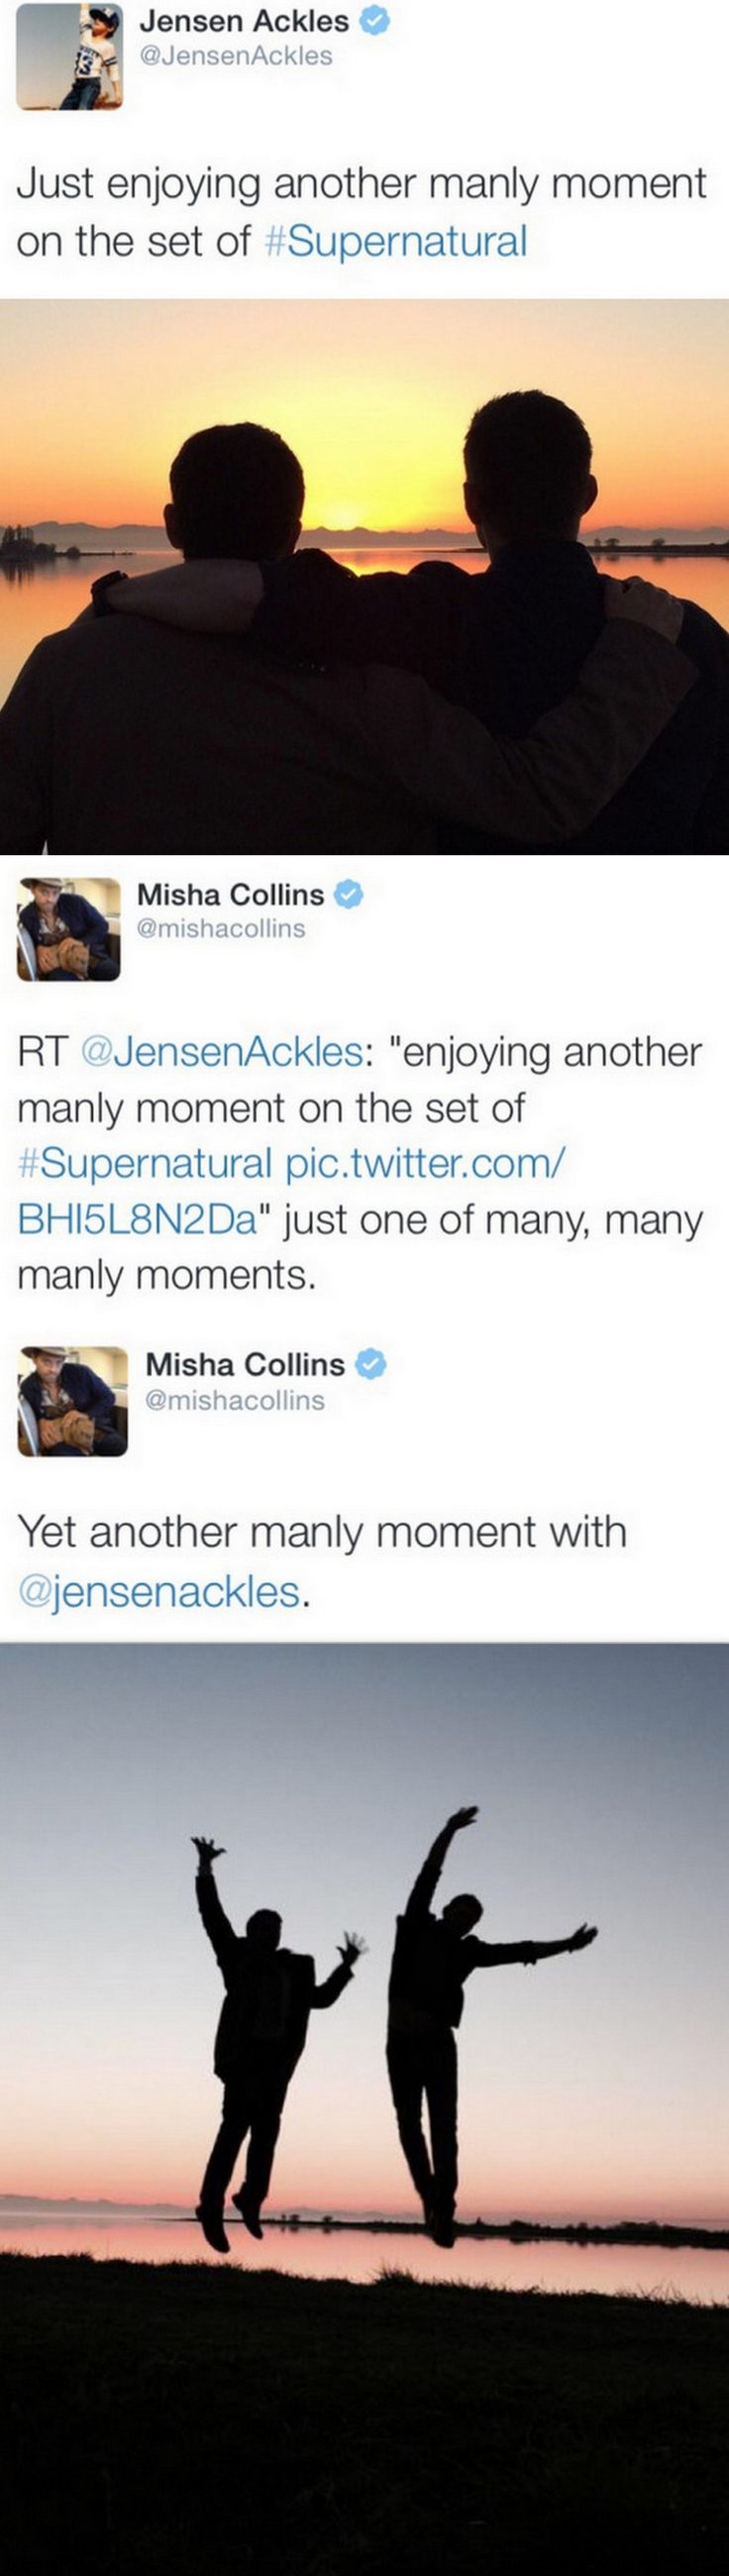 Jensen and Misha tweets - looks like Jensen's ballet is in perfect form, lol!